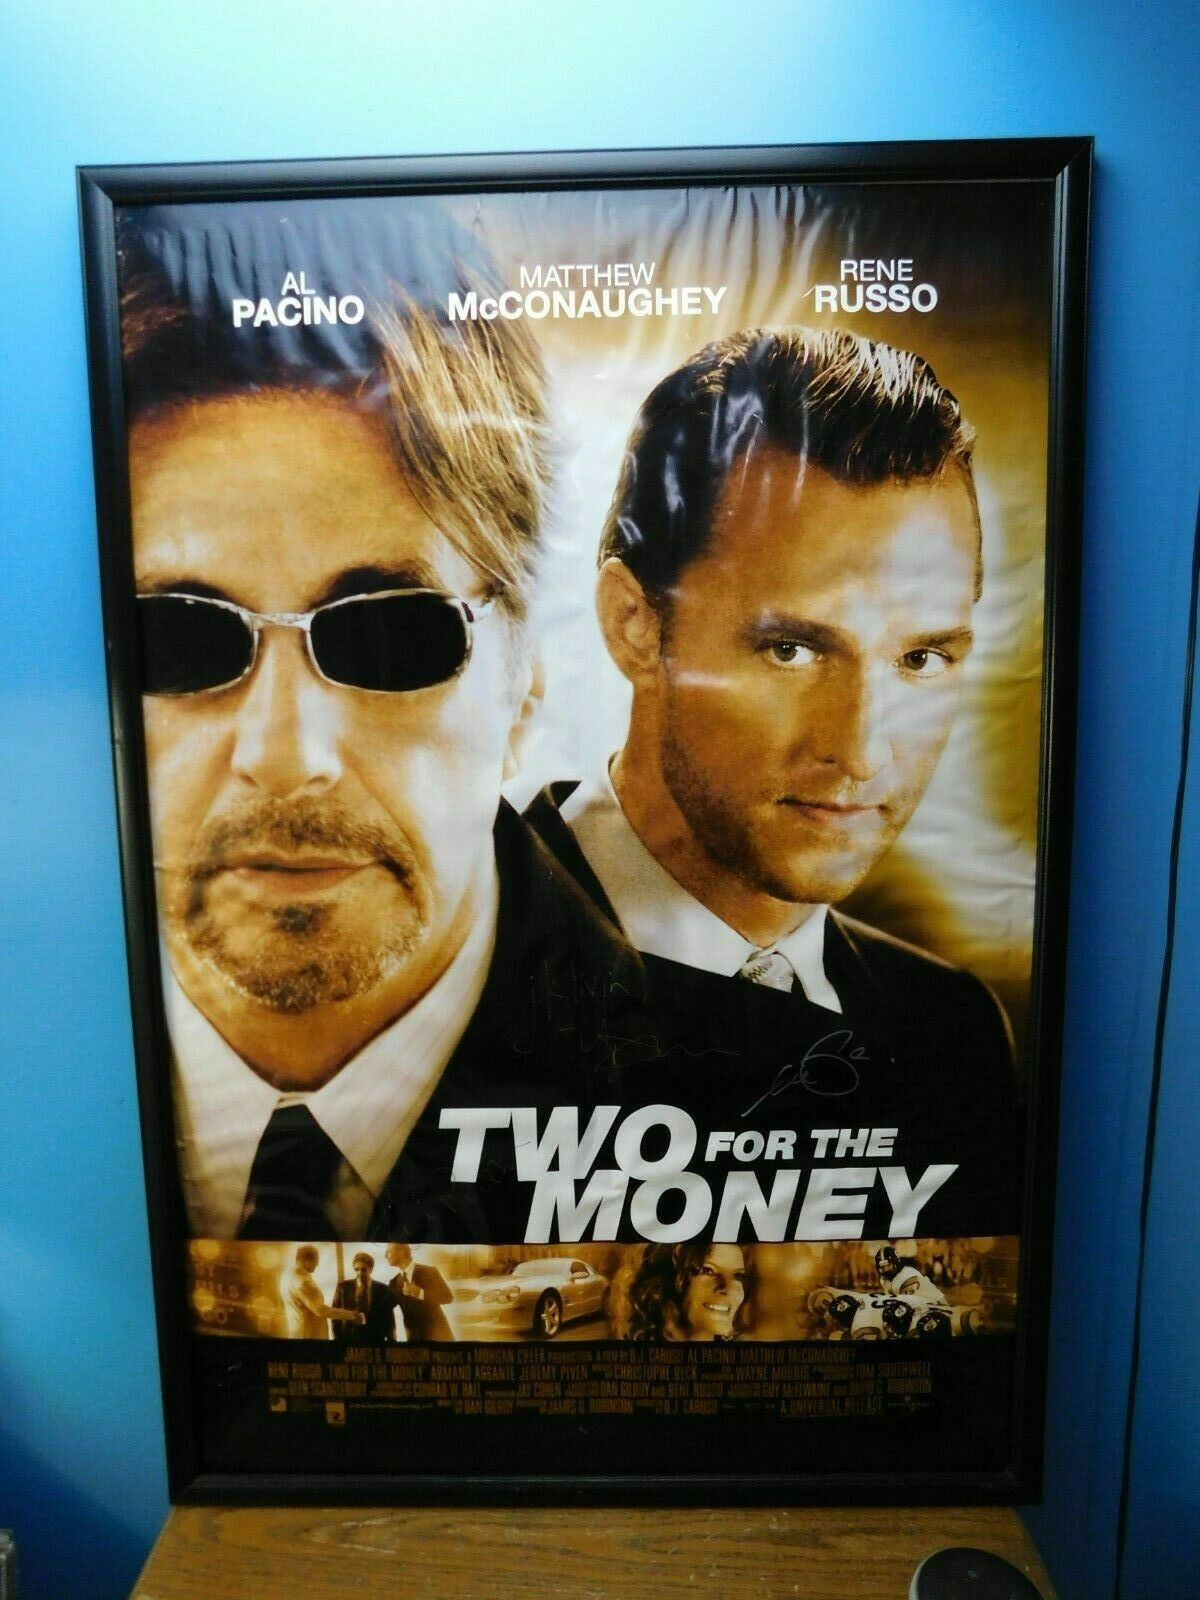 Primary image for Two For The Money Autographed Signed  Movie Poster Pacino McCONAUGHEY Russo